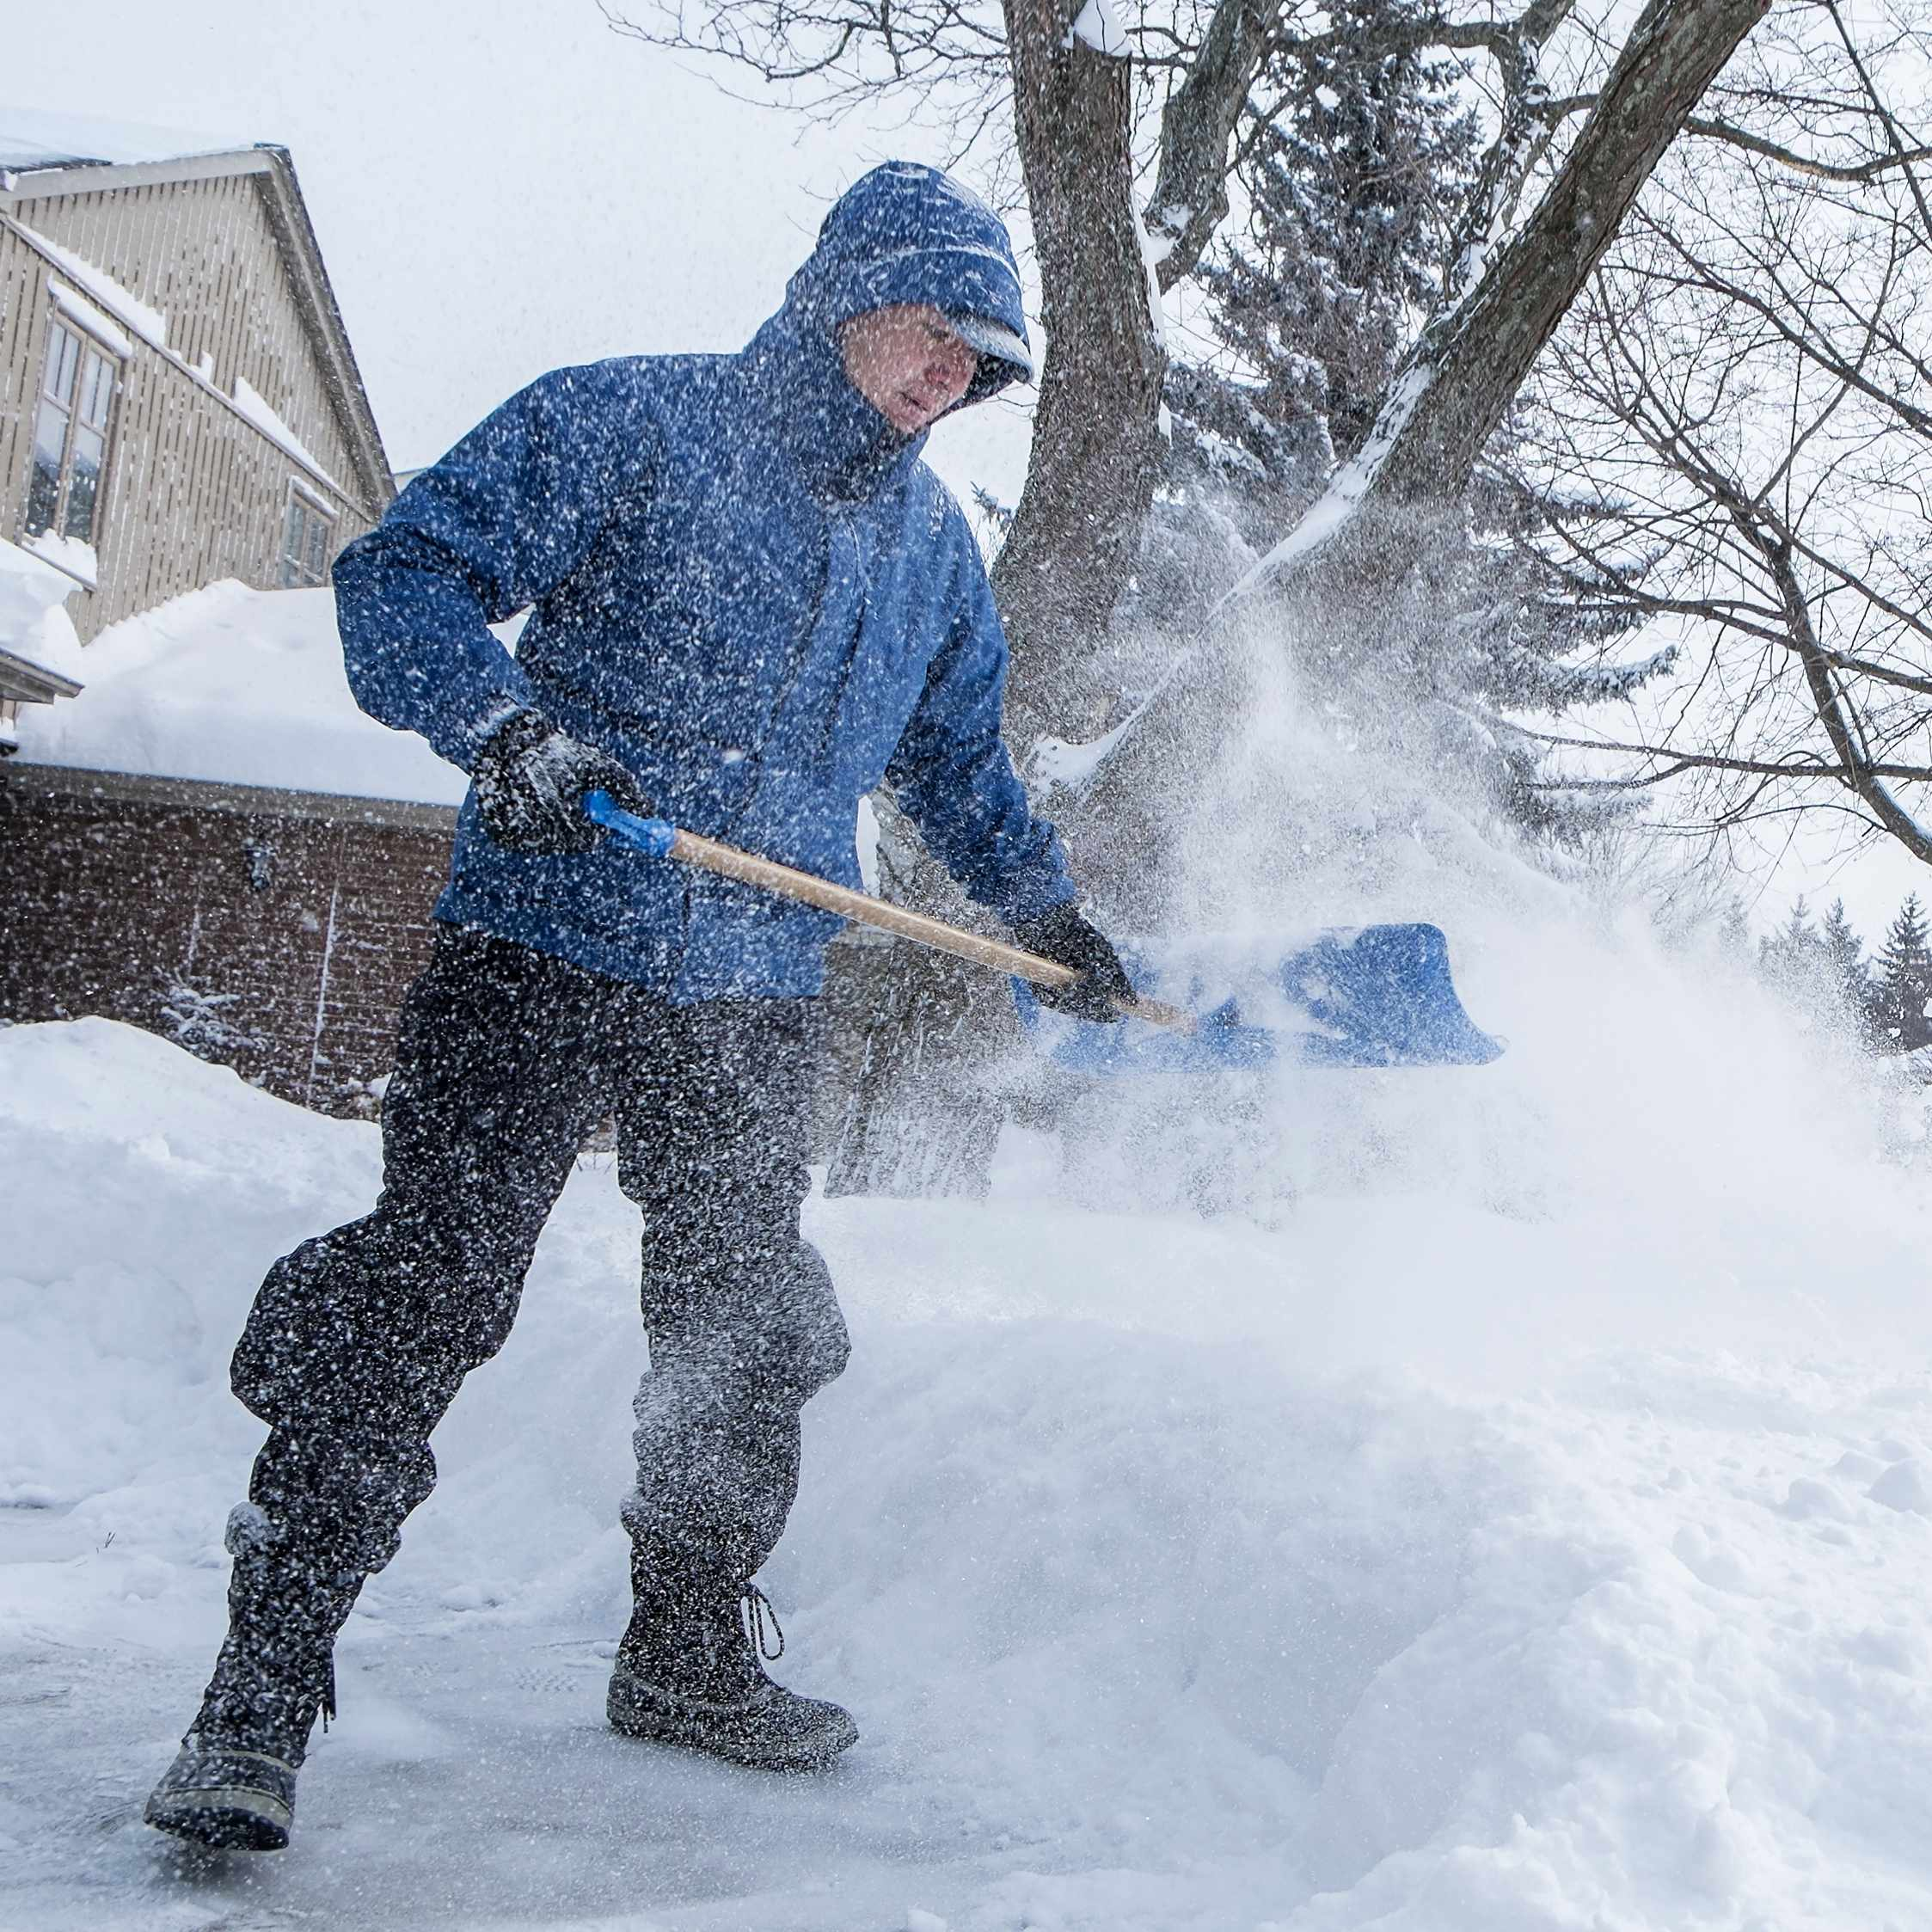 man shoveling snow from sidewalk after storm